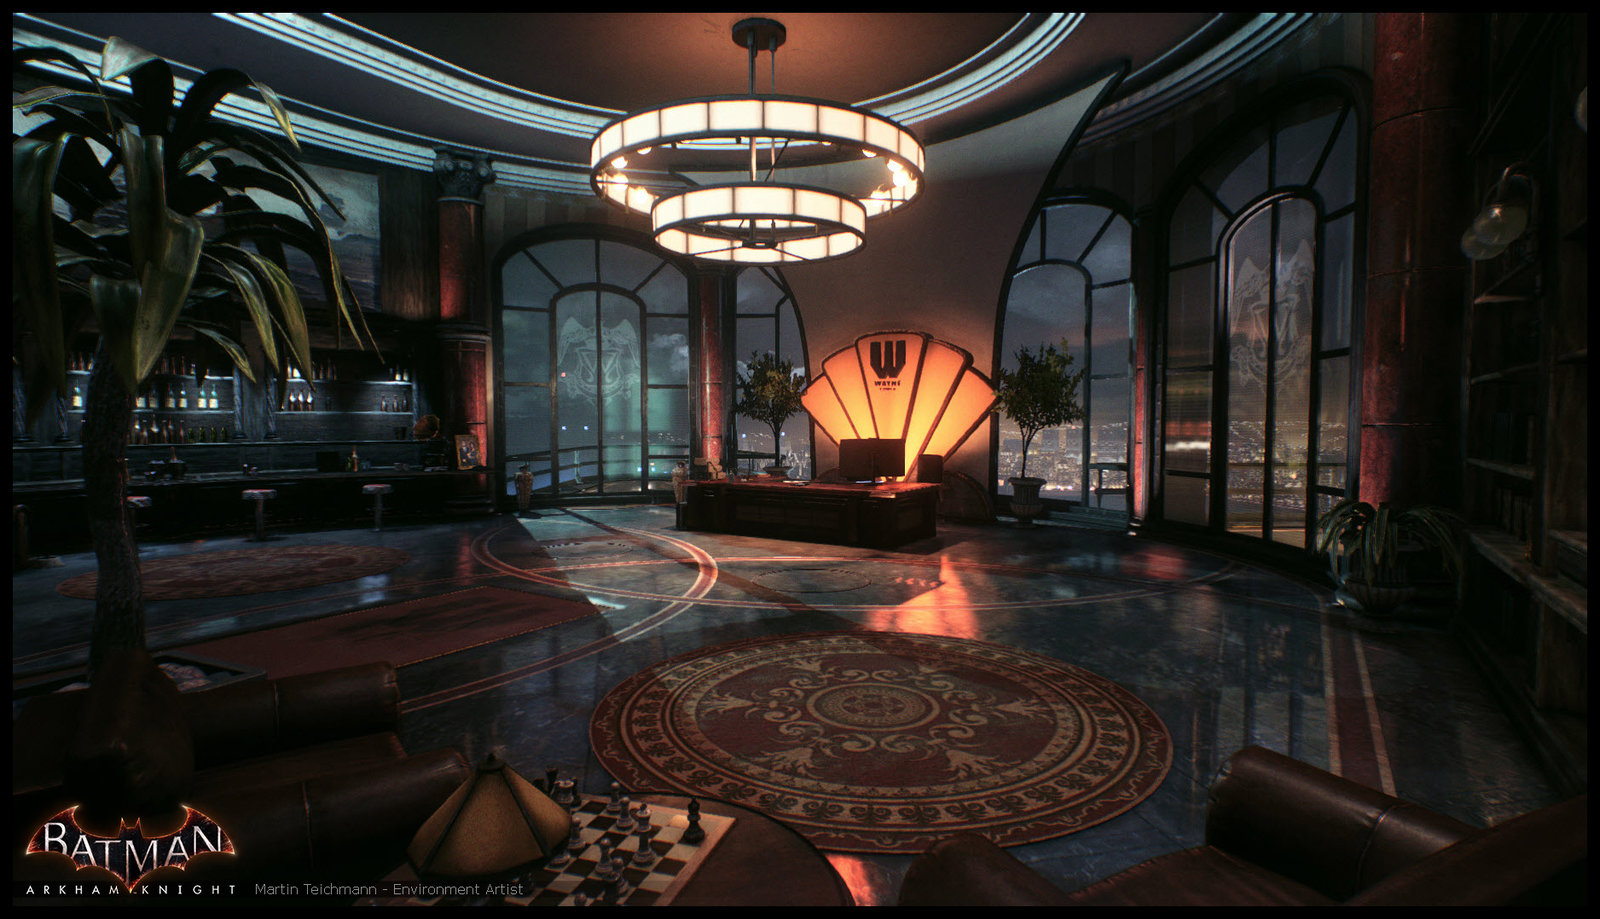 Wayne Office - Batman Arkham Knight